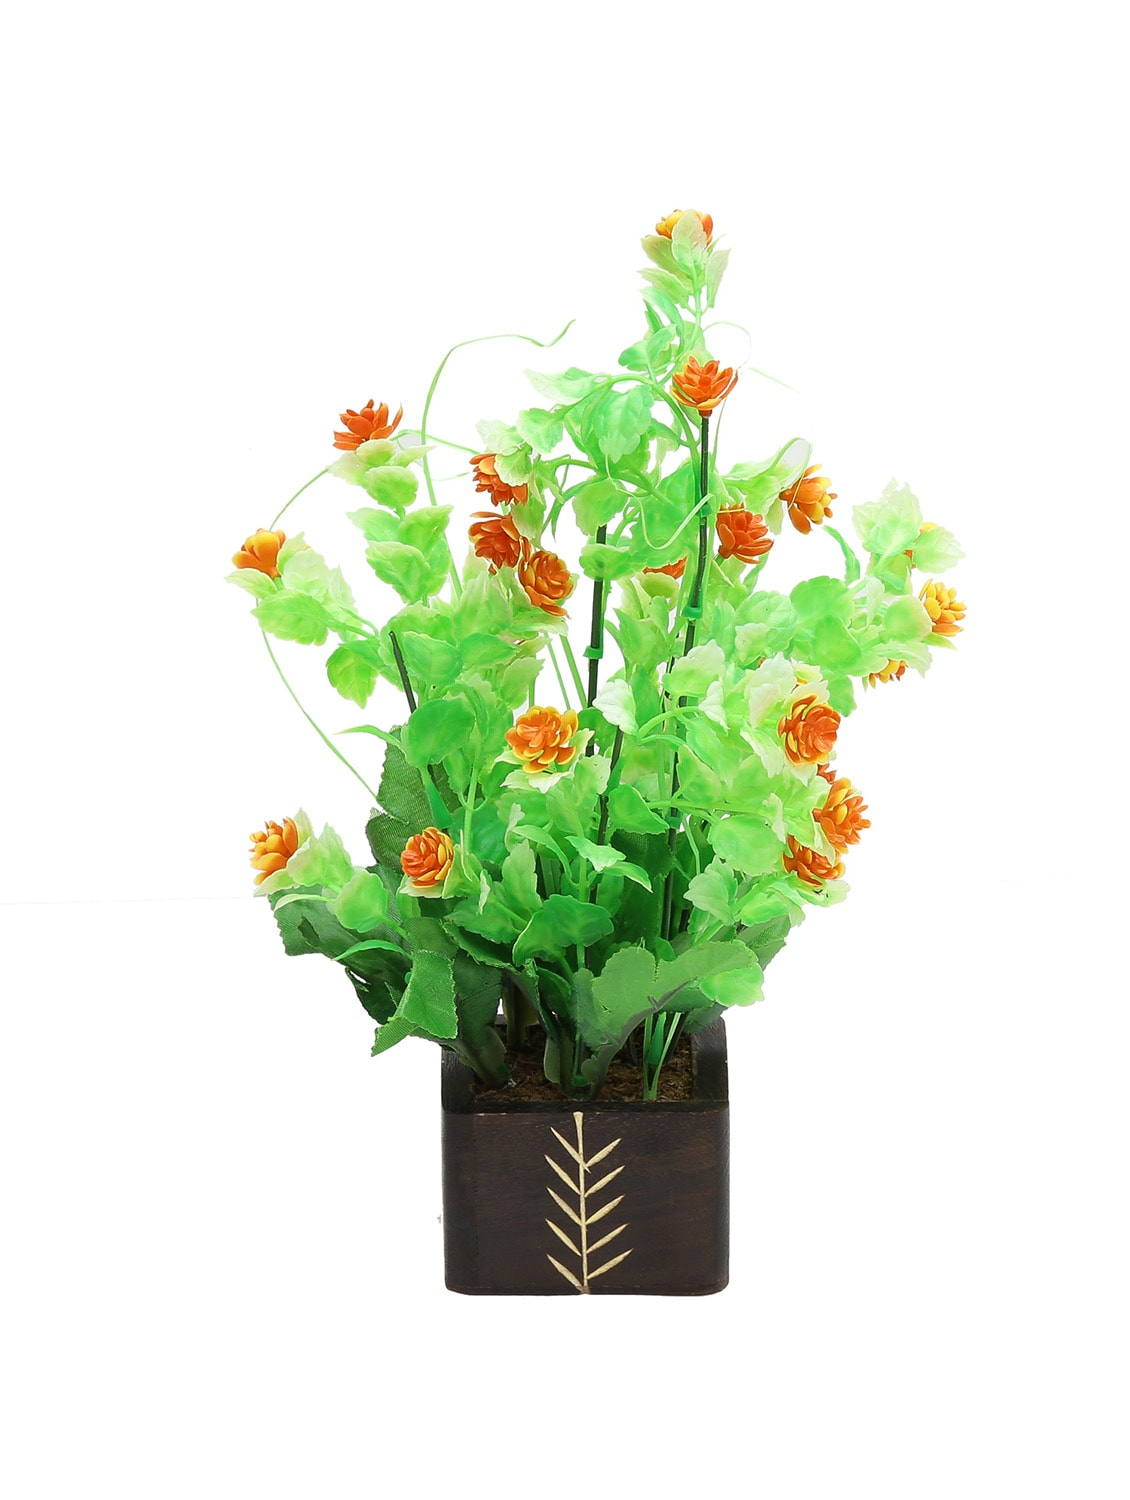 Small House Plants With Flowers Small Indoor Flowering Plants India Flowers Healthy